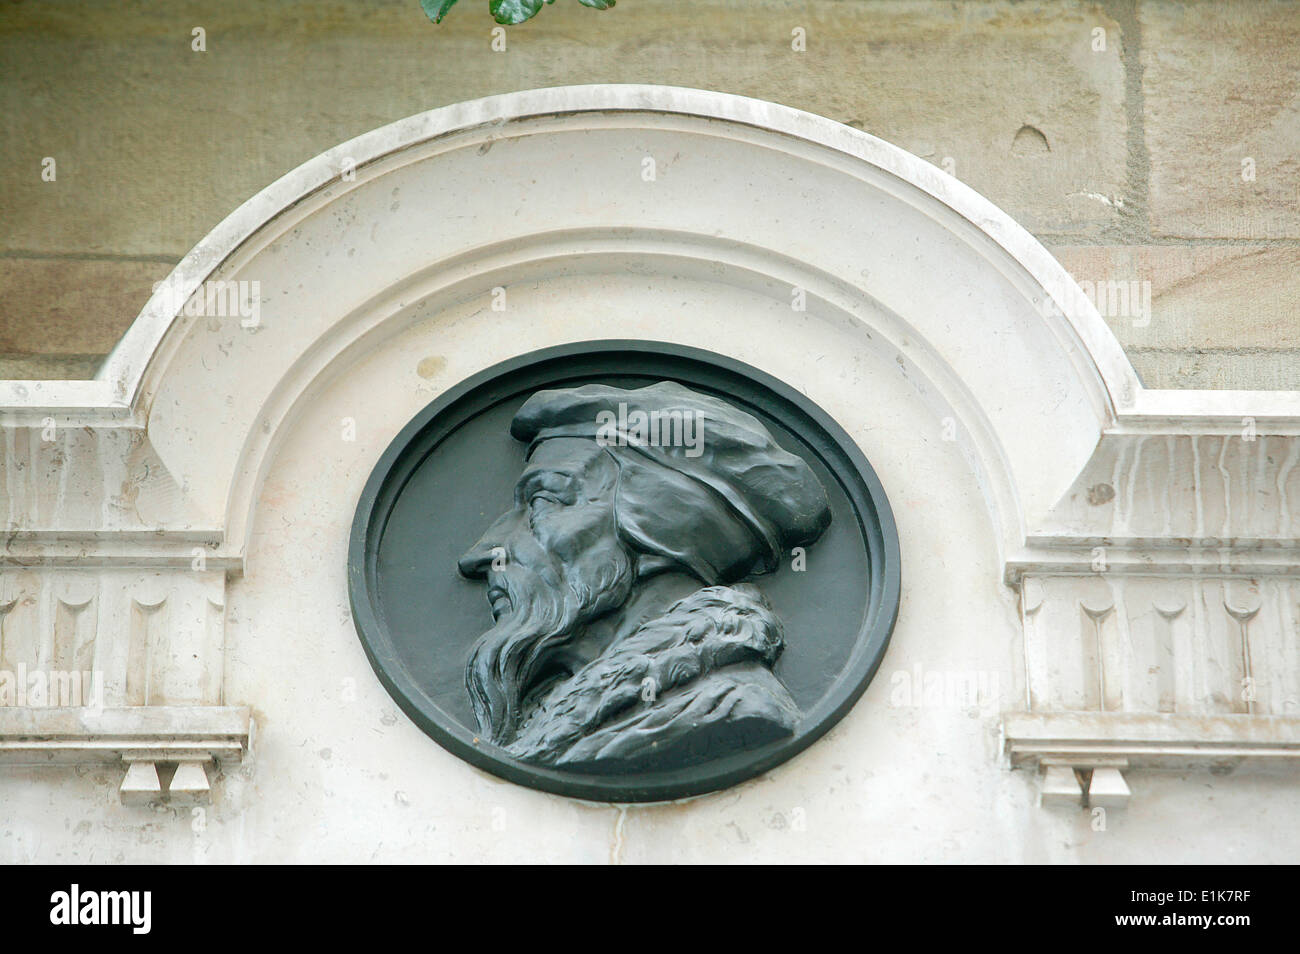 John Calvin - French reformer and theologian - Stock Image